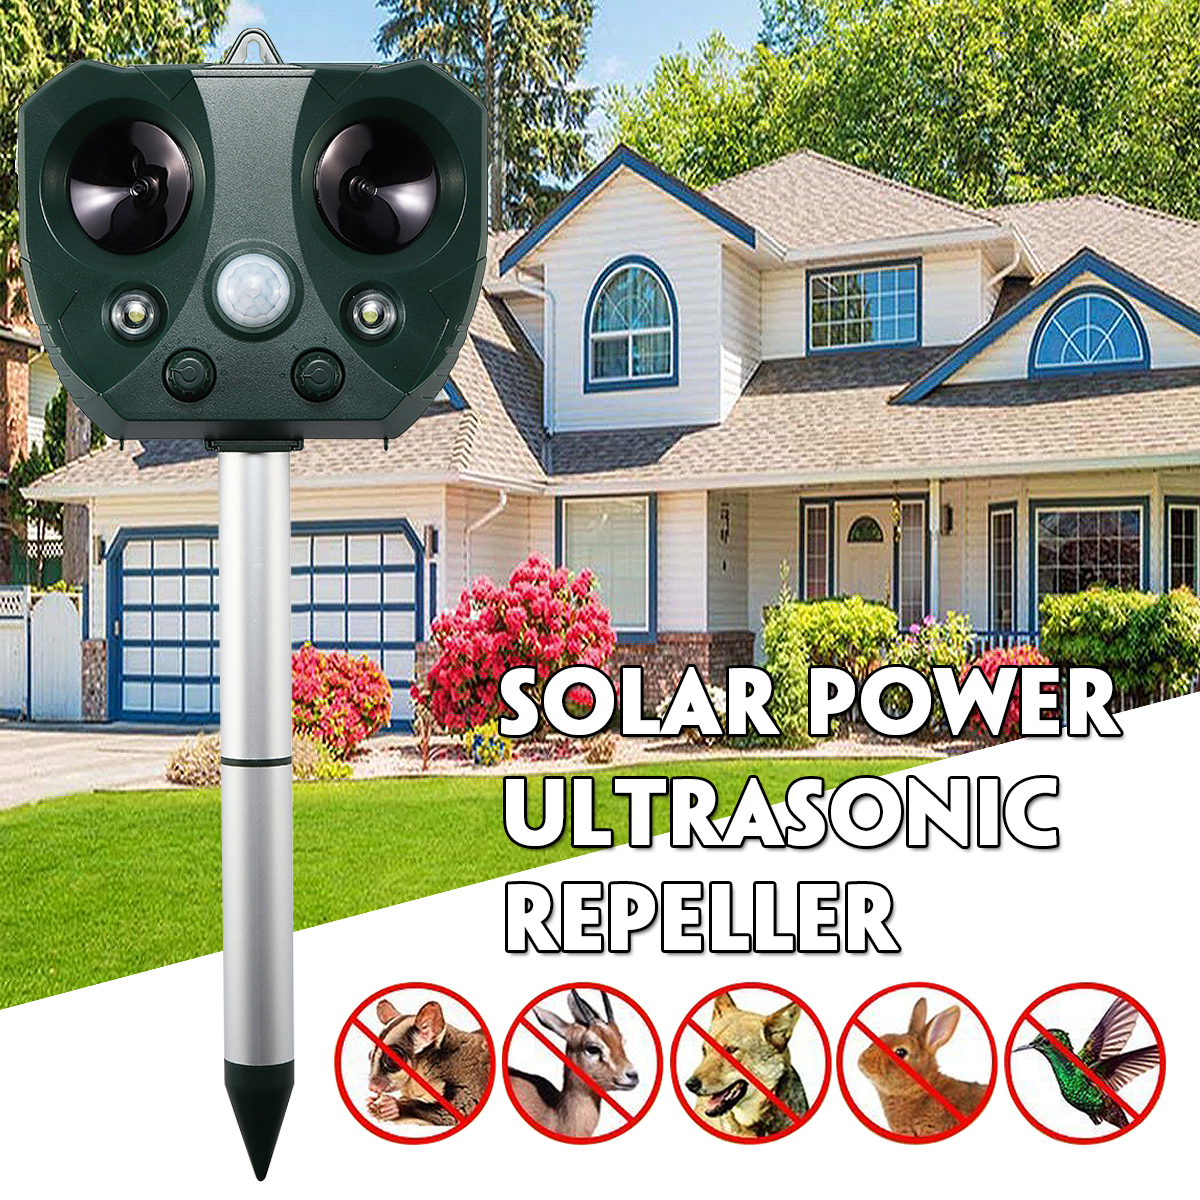 1Pcs Solar Sensor Ultrasonic Pest Repellent Electronic Repeller with LED strong flash light for Protect the garden farmland